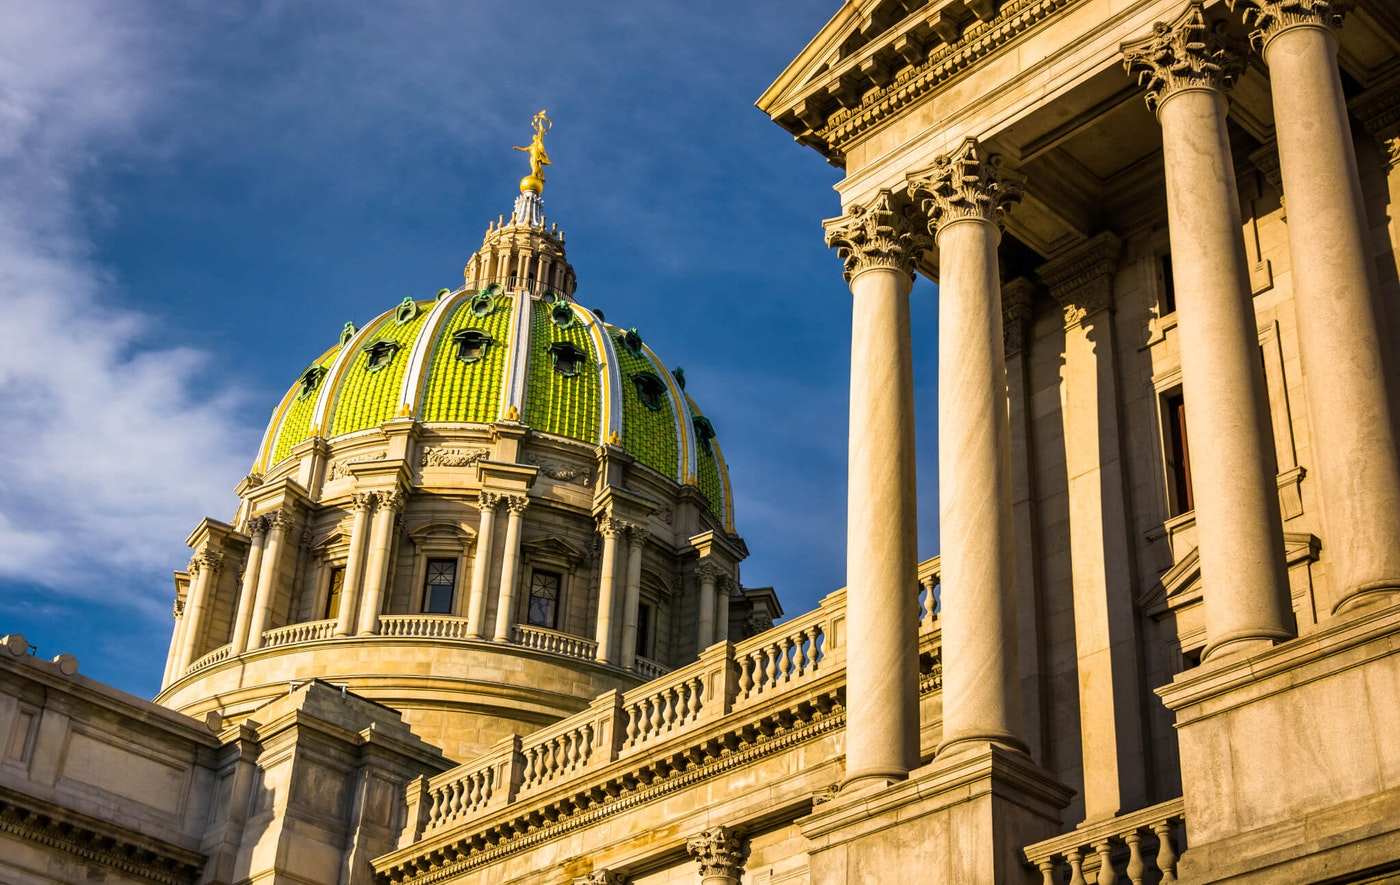 Republicans in the state Legislature are pushing bills that would roll back abortion rights and expand gun rights. (Jon Bilous/Shutterstock)